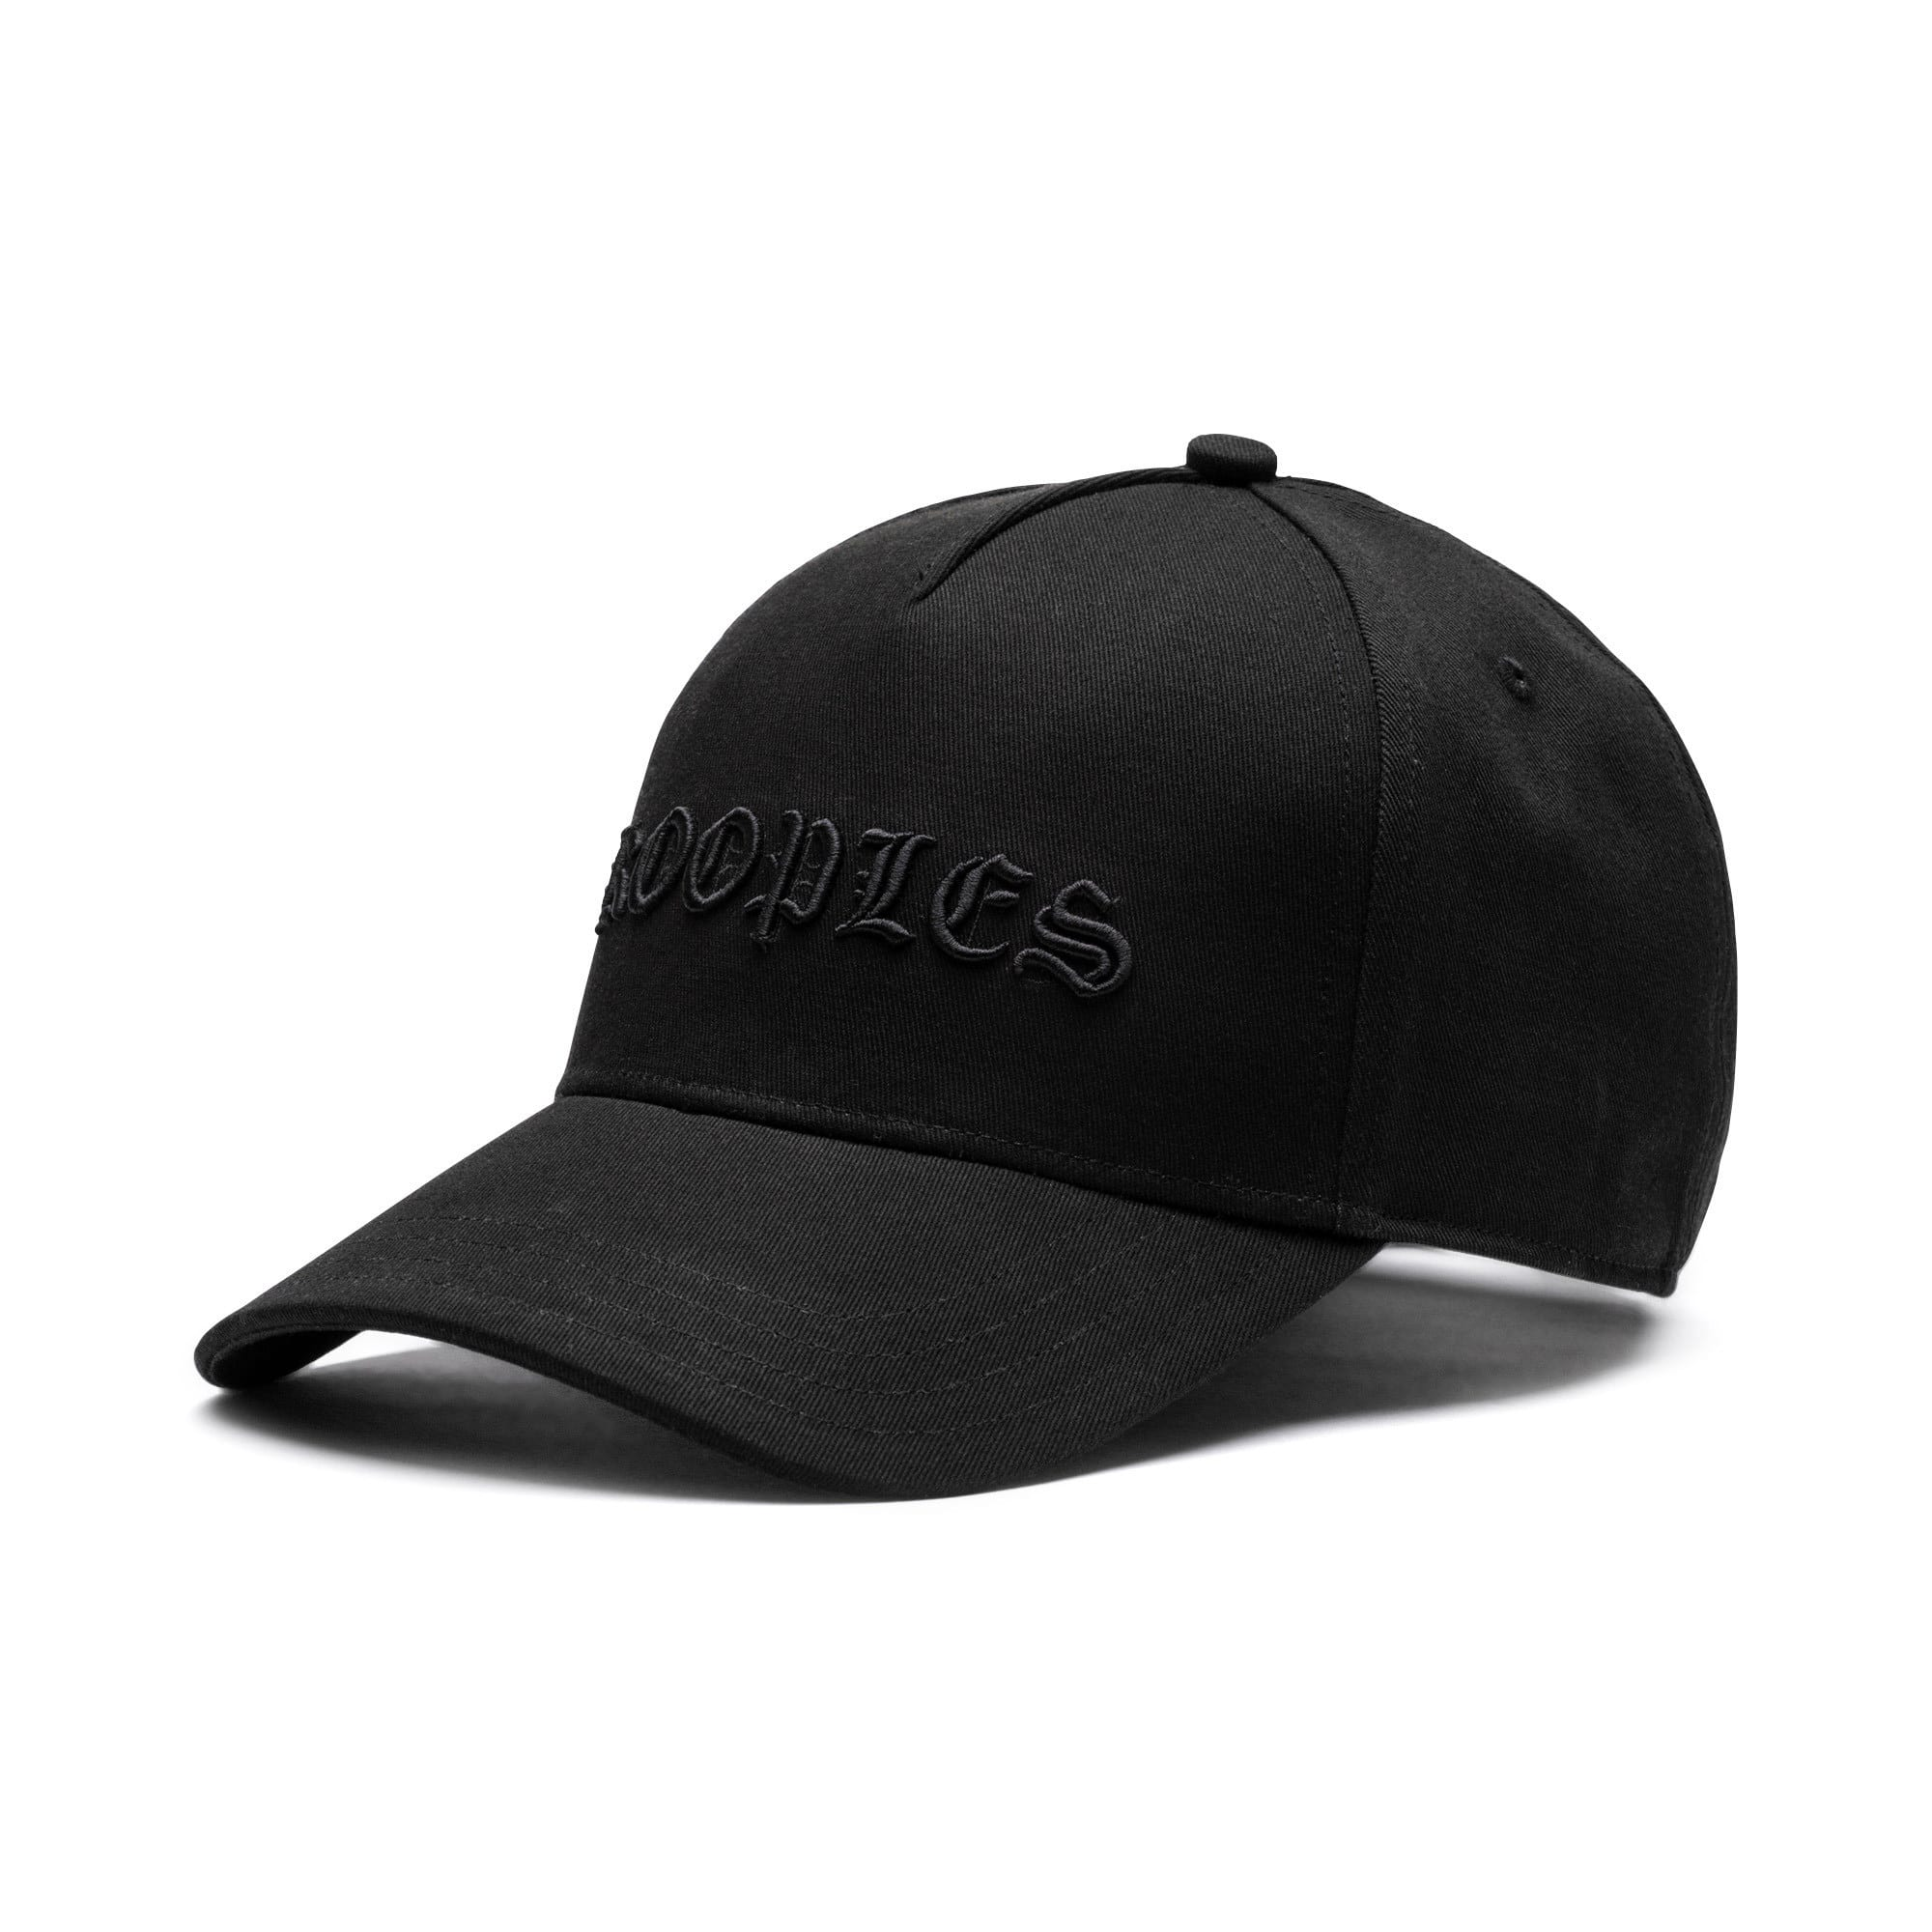 Thumbnail 1 of PUMA x THE KOOPLES Cap, Puma Black, medium